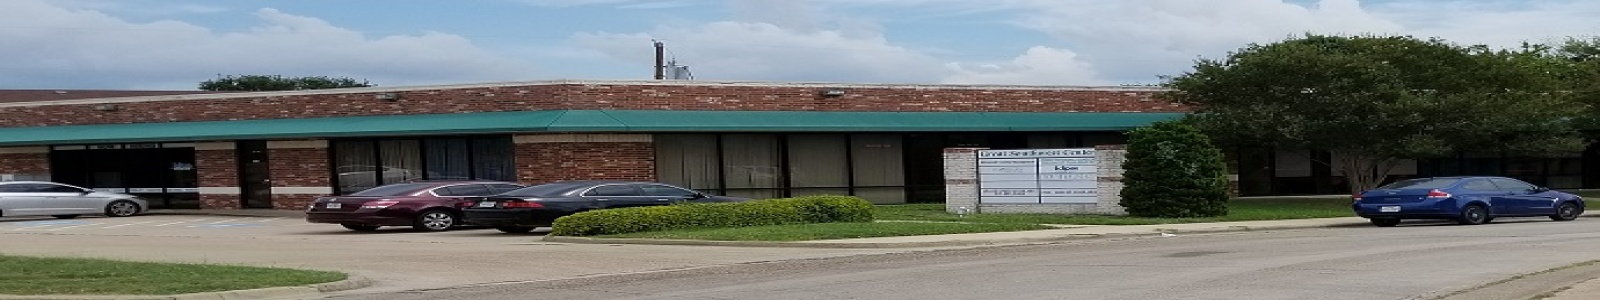 201 Amanda Lane, Waxahachie, Texas 75165, ,Commercial Property,For Lease,Amanda,1053